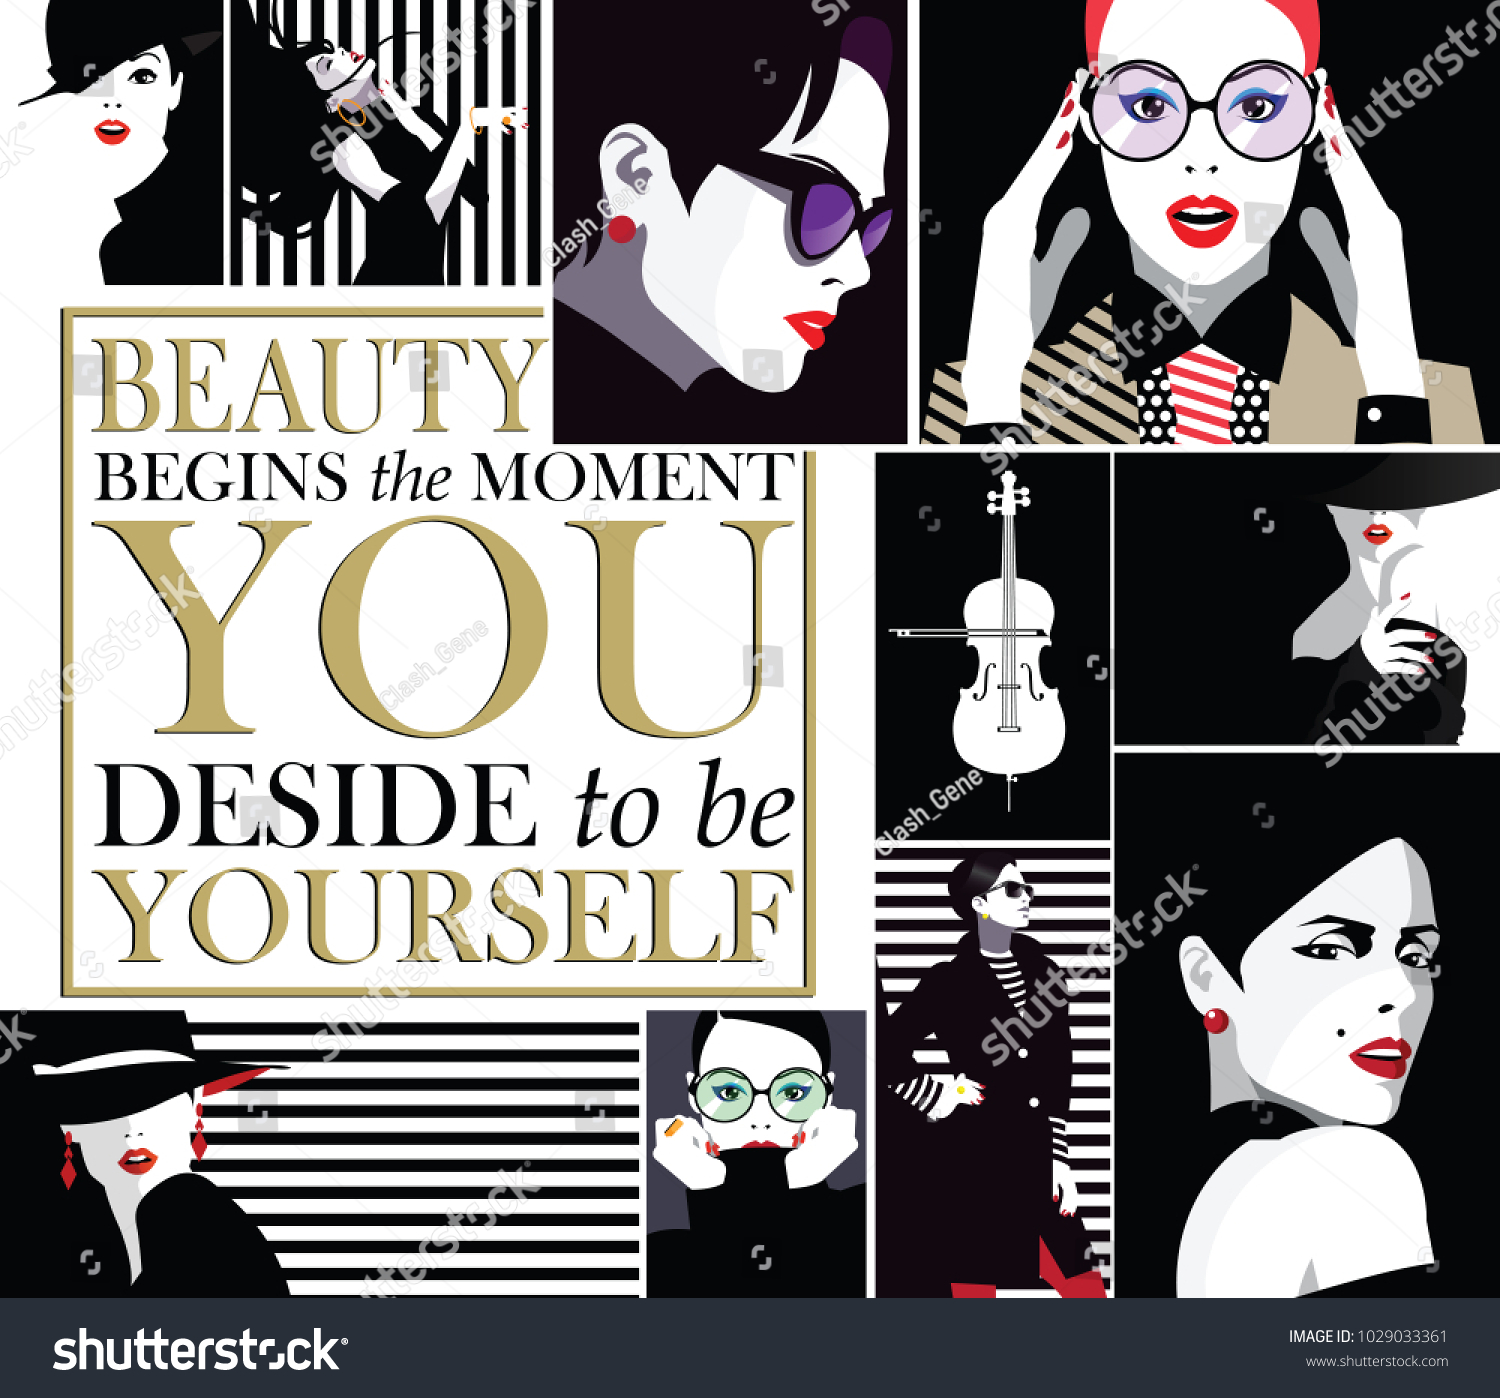 Group portraits fashion women style pop stock vector hd royalty group portraits of fashion women in style pop art with quote solutioingenieria Image collections